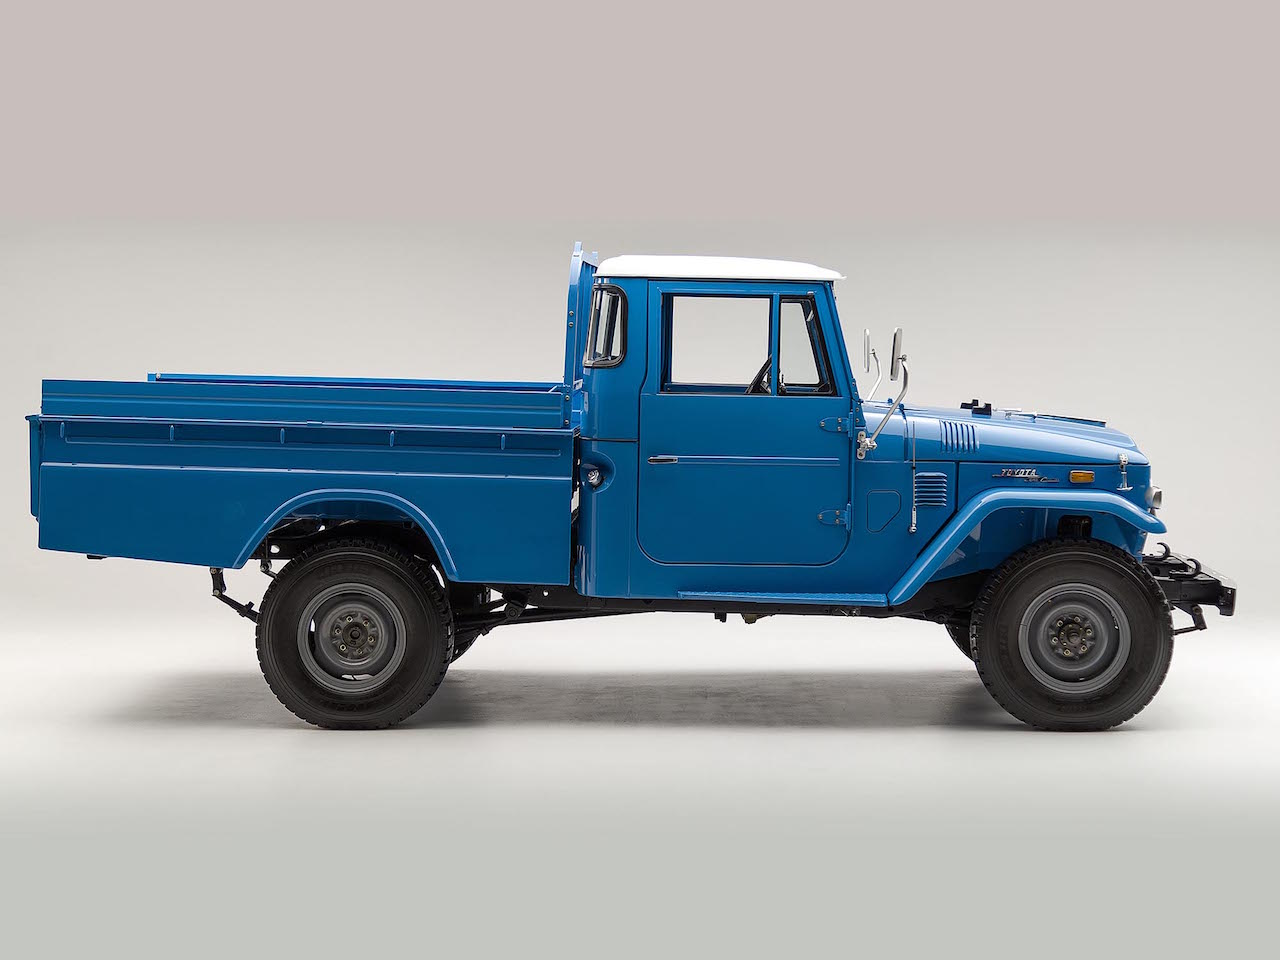 Index of /wp-content/gallery/1974-Toyota-Land-Cruiser-FJ45-Pickup/